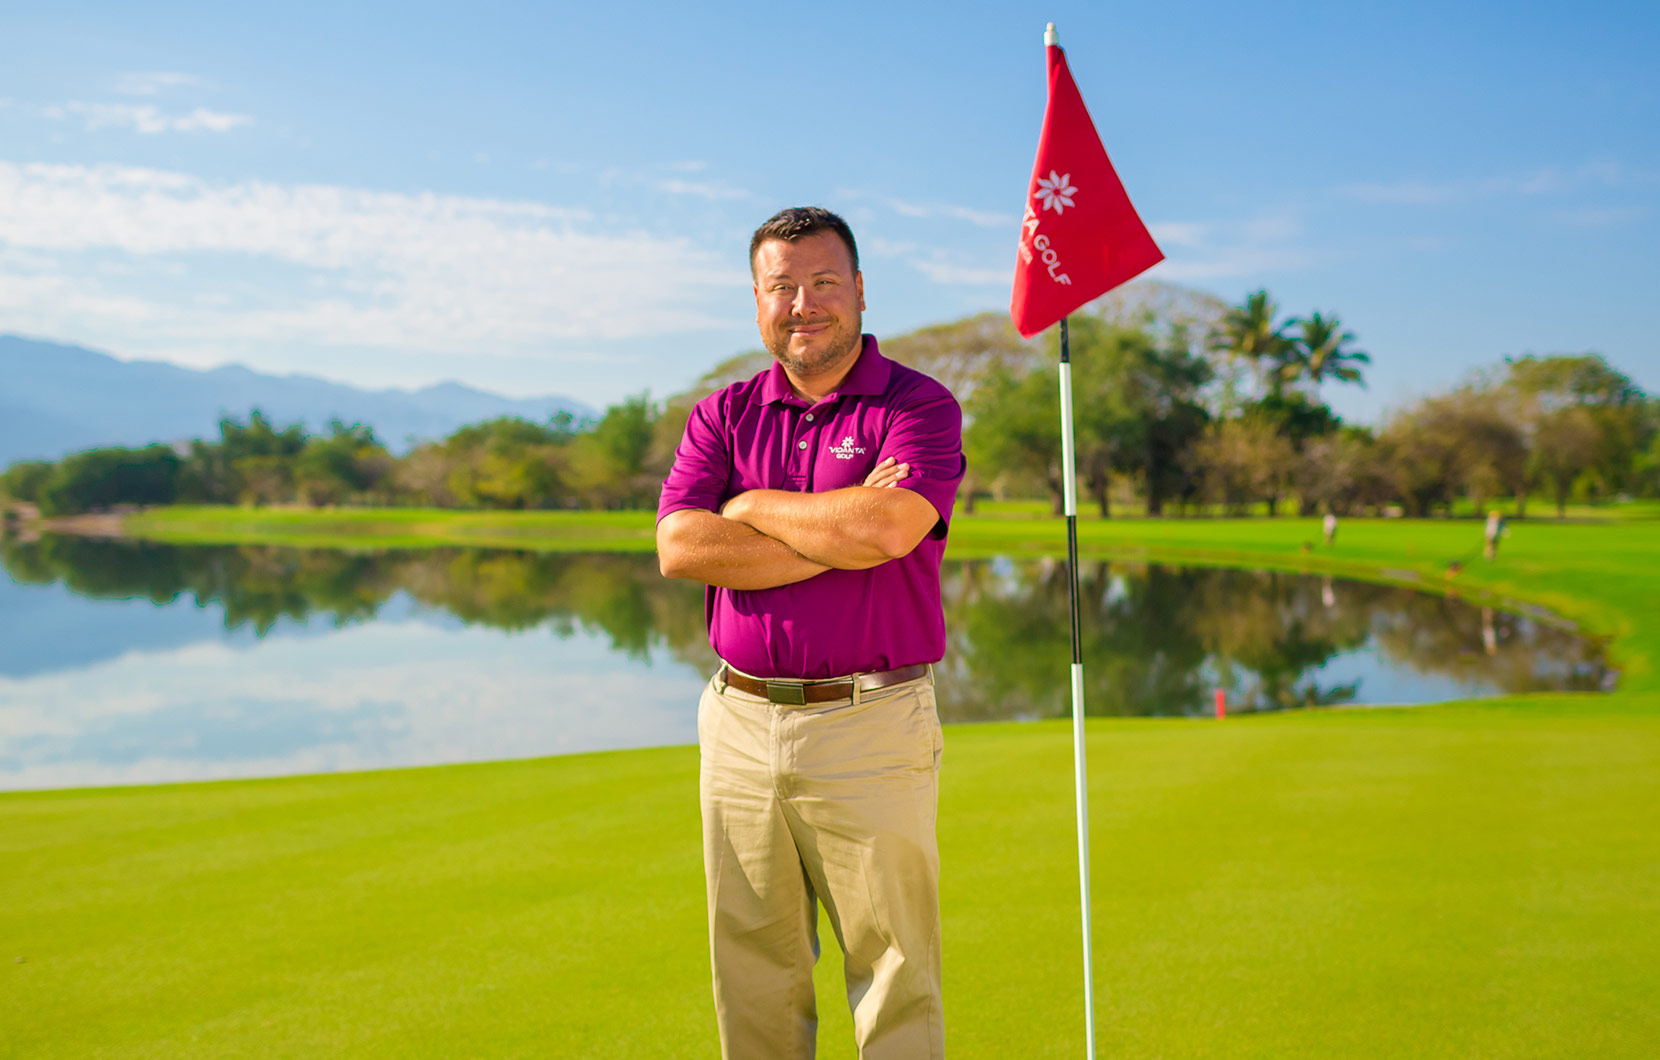 Shane has been caring for the courses at Vidanta Golf for the last year and a half.